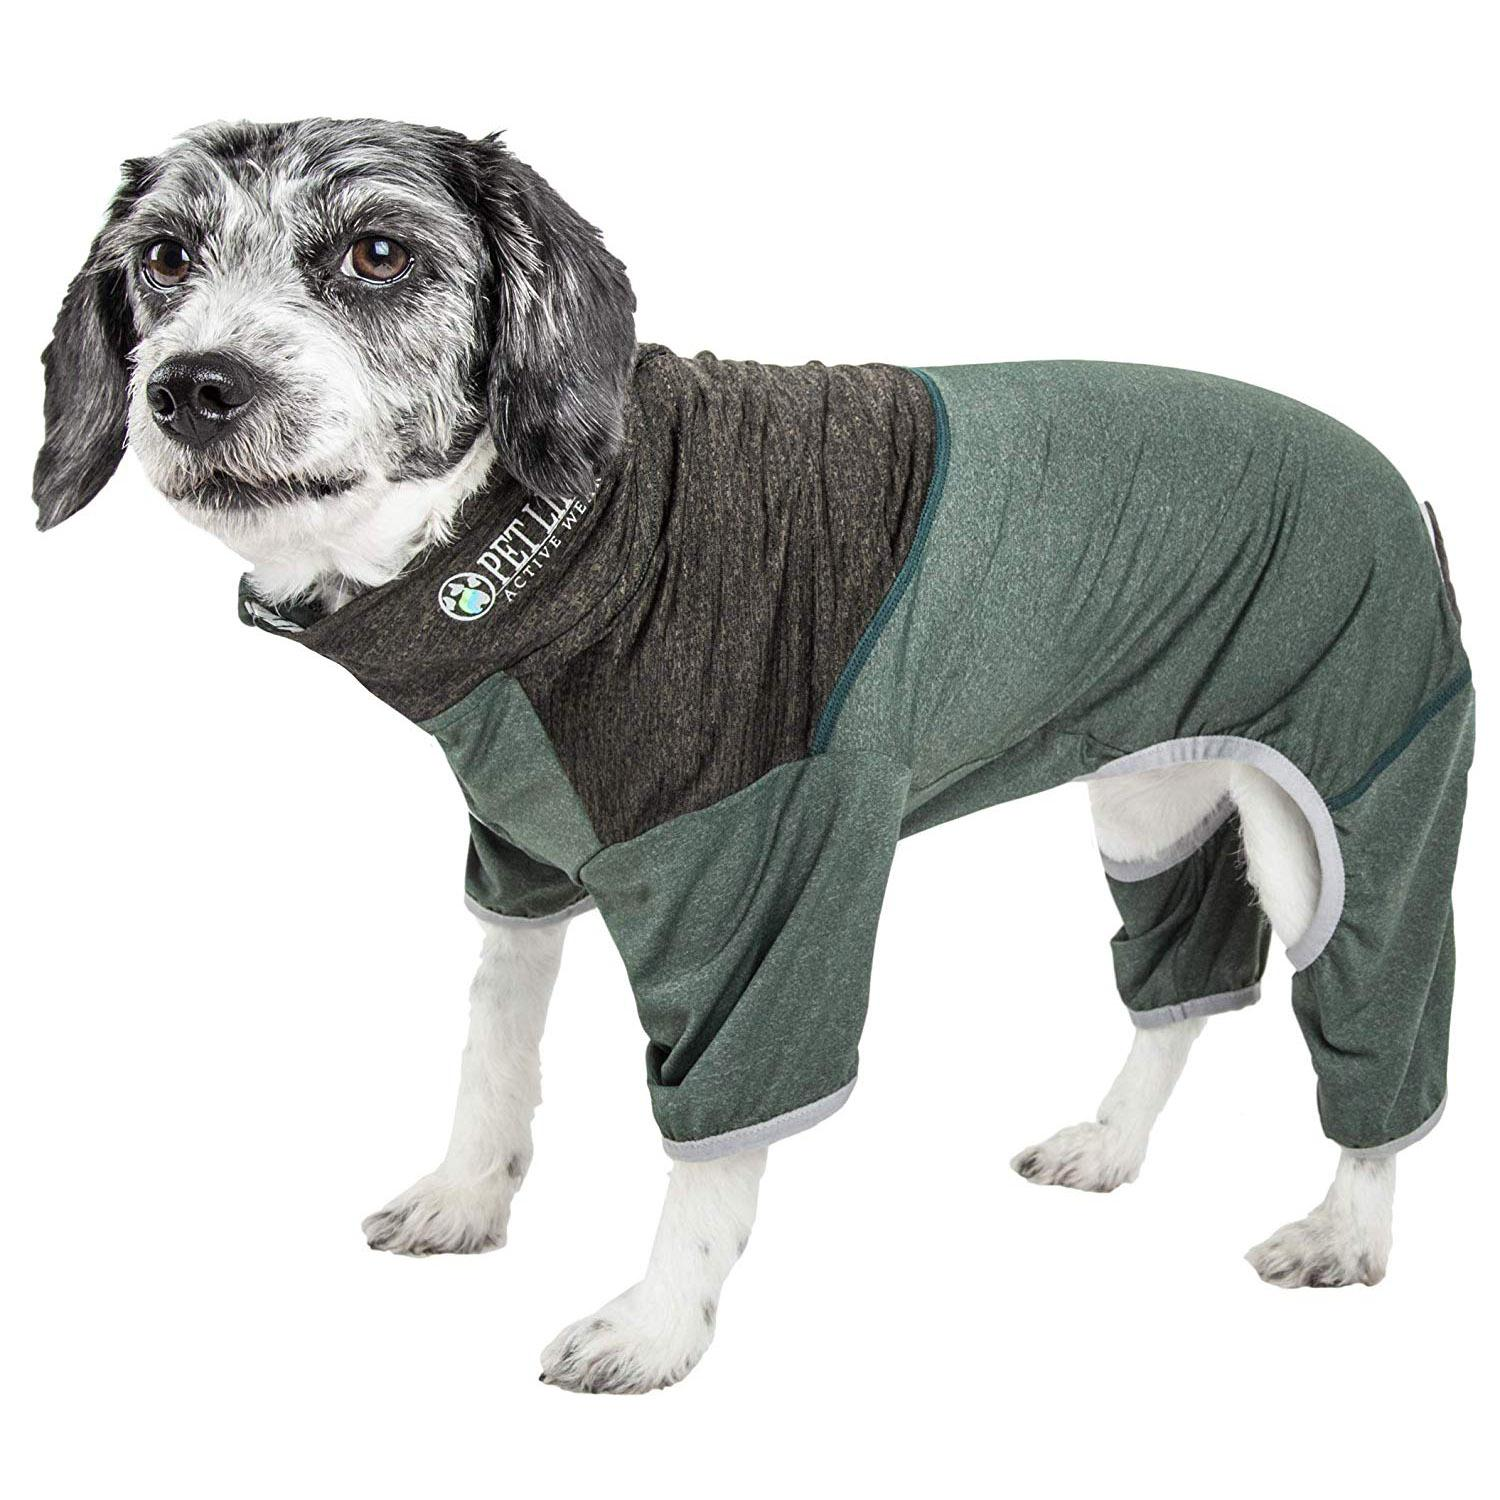 Pet Life ACTIVE 'Embarker' Performance Full-Body Dog Warm Up Suit - Hunter Green